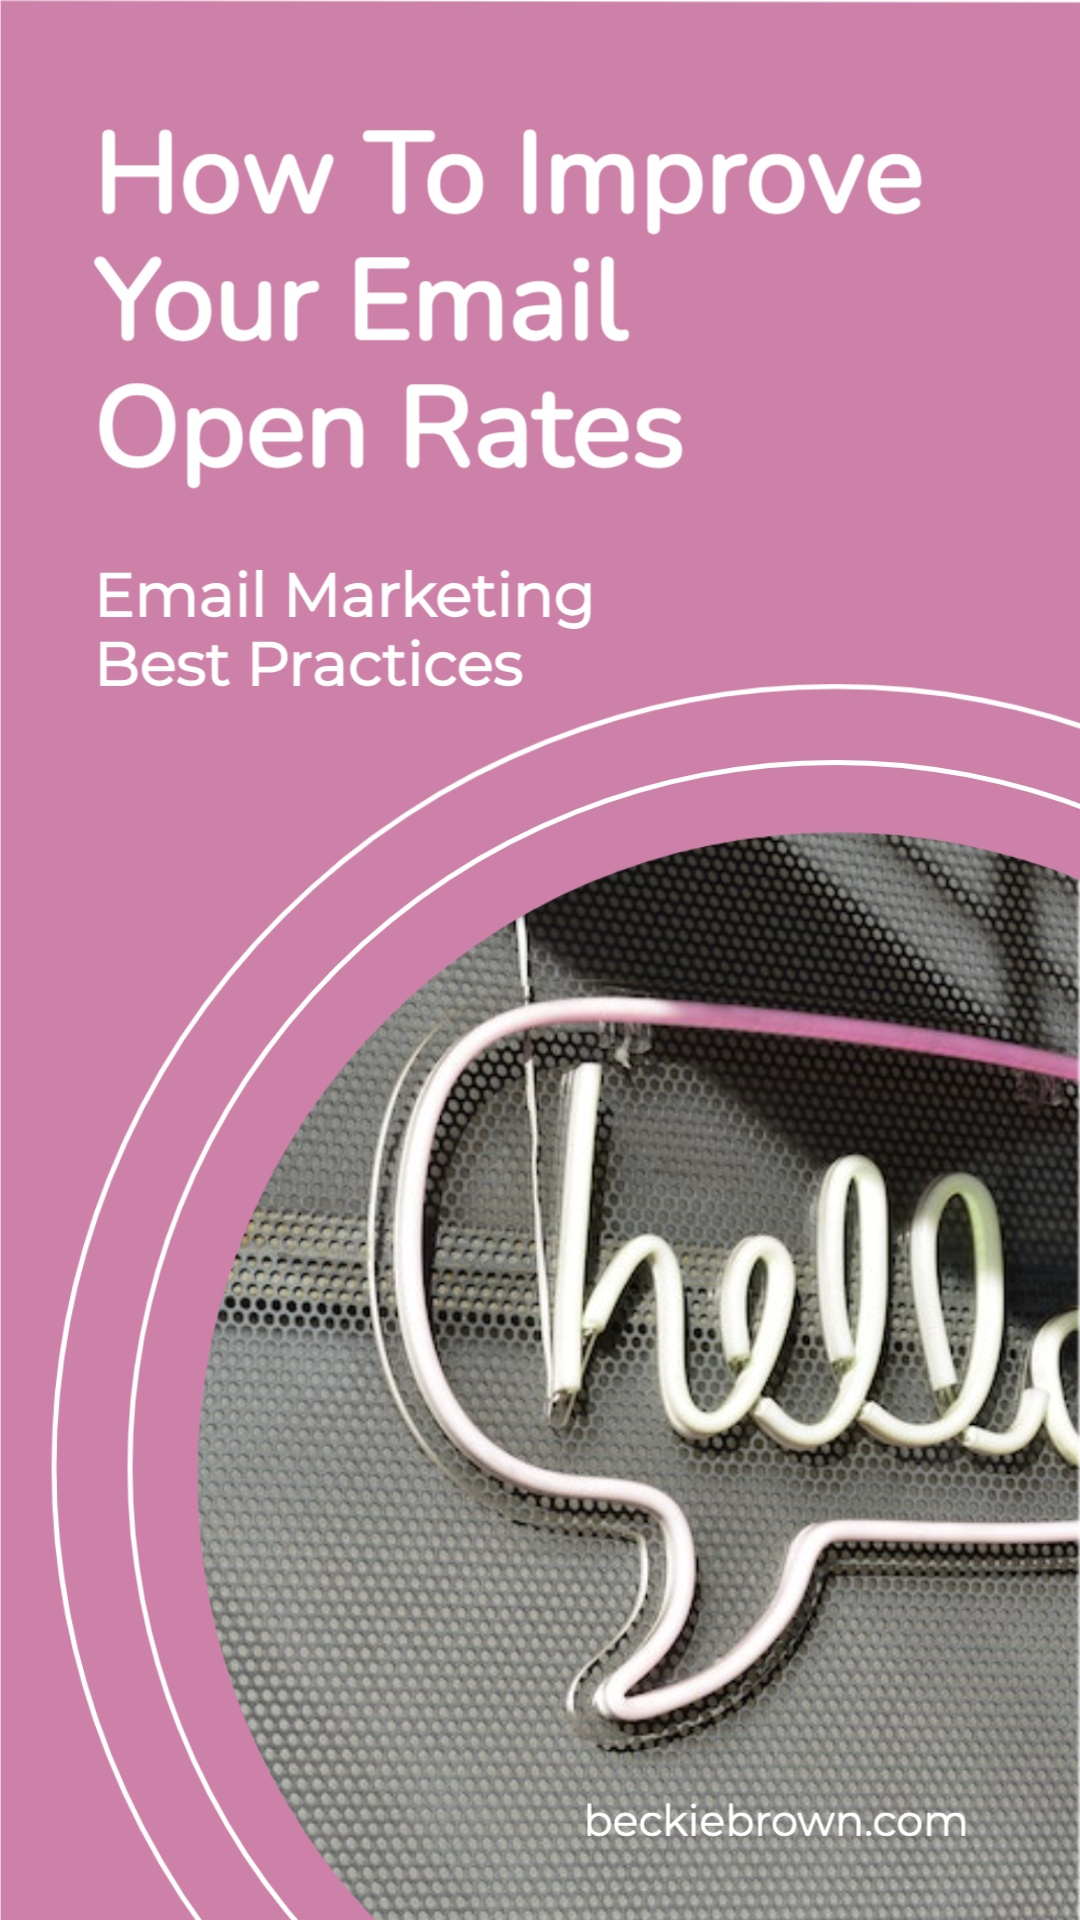 Pinnable Image: Improve Your Email Open Rates: Email Marketing Best Practices